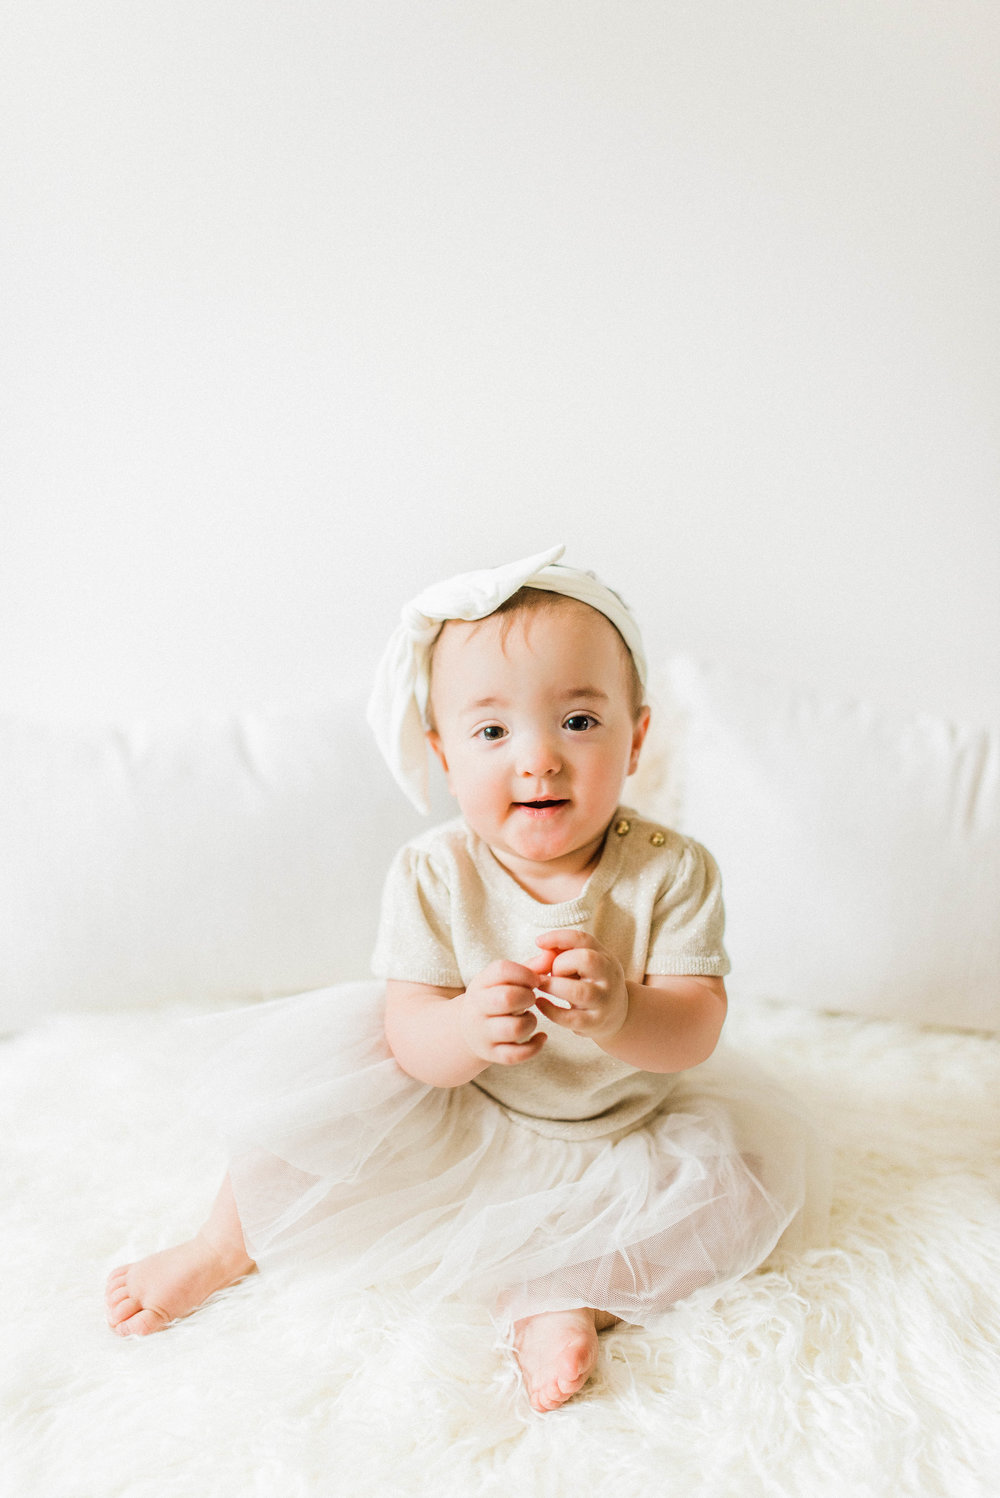 Cora | Bare & Bubbly 12 Month Photography Session | Nobleville, IN Family Photographers